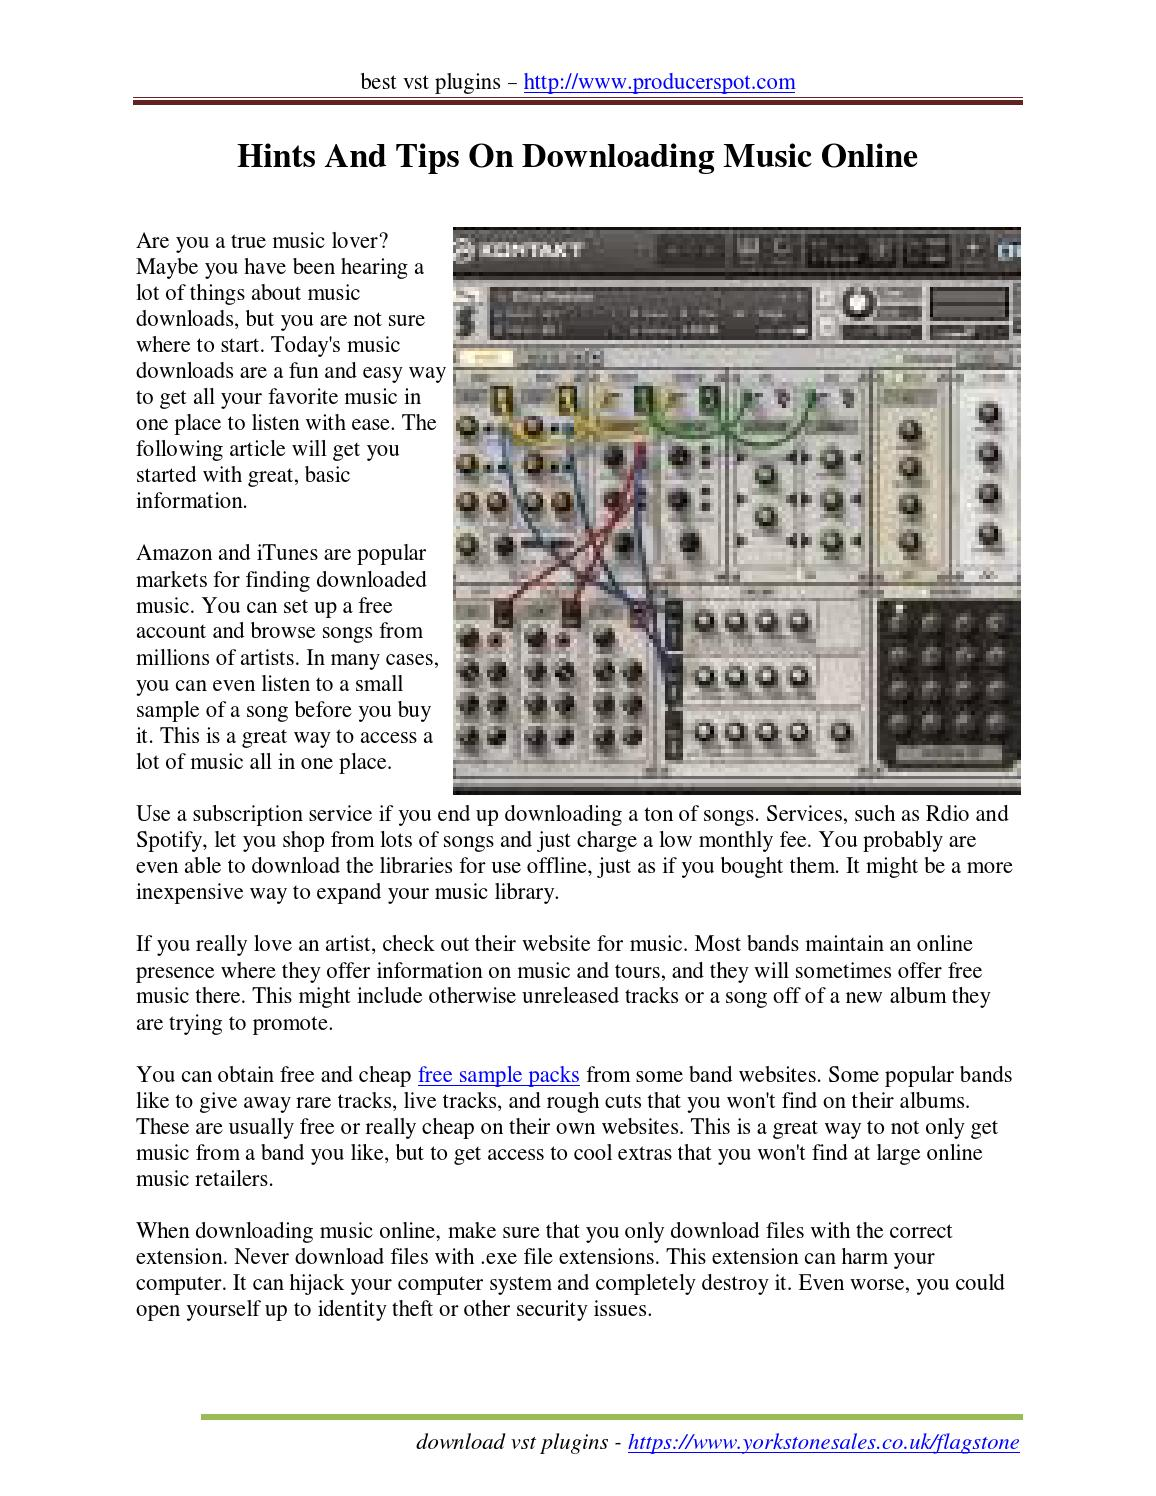 Hints and tips on downloading music online by RosariaOyola - issuu